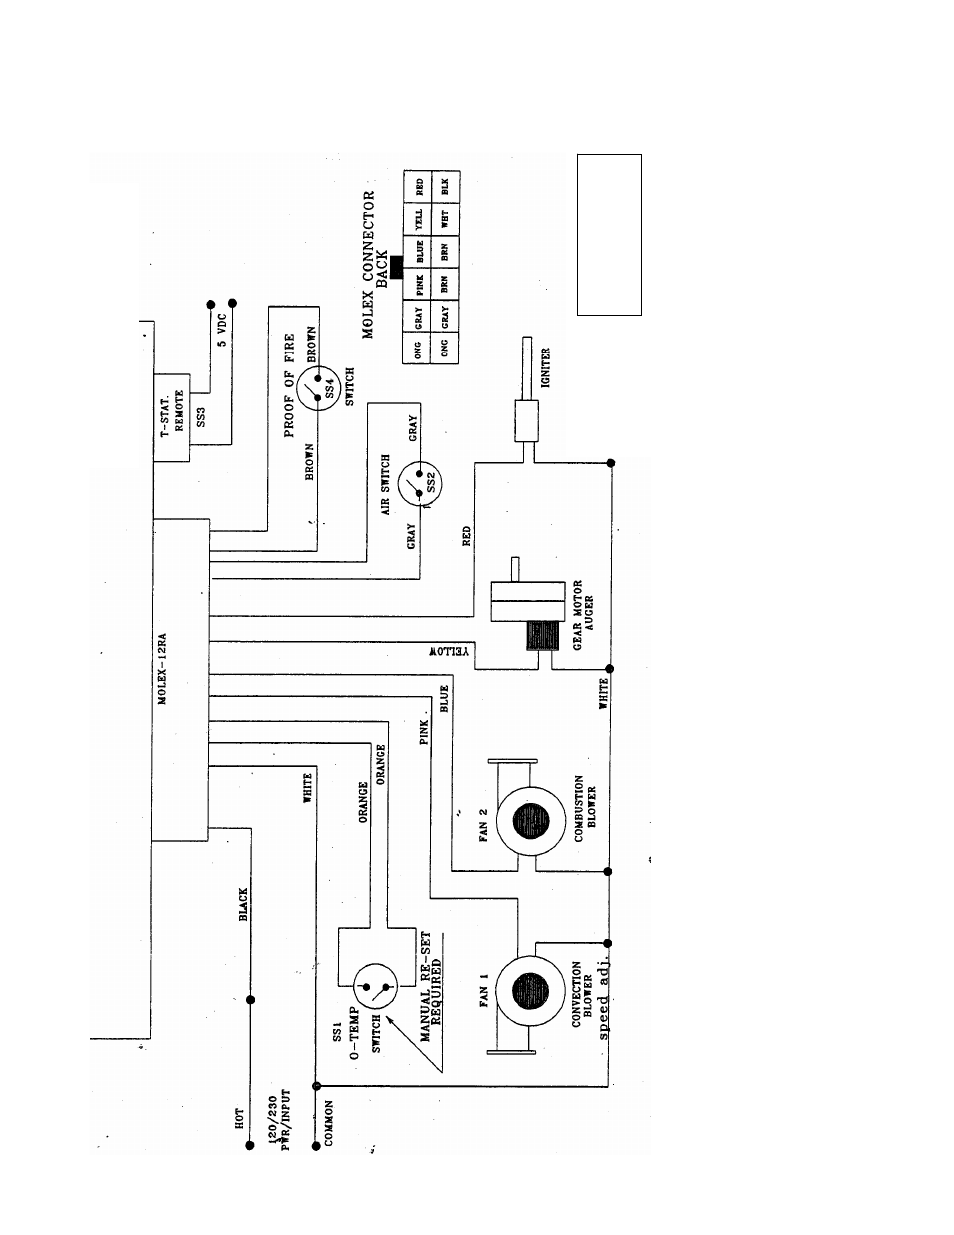 [SCHEMATICS_4PO]  Ac model wiring diagram warning, Dc model ddc- 3000 wiring | American  Energy Systems MagnuM Baby Countryside User Manual | Page 33 / 43 |  Original mode | Ddc Panel Wiring Diagram |  | Manuals Directory